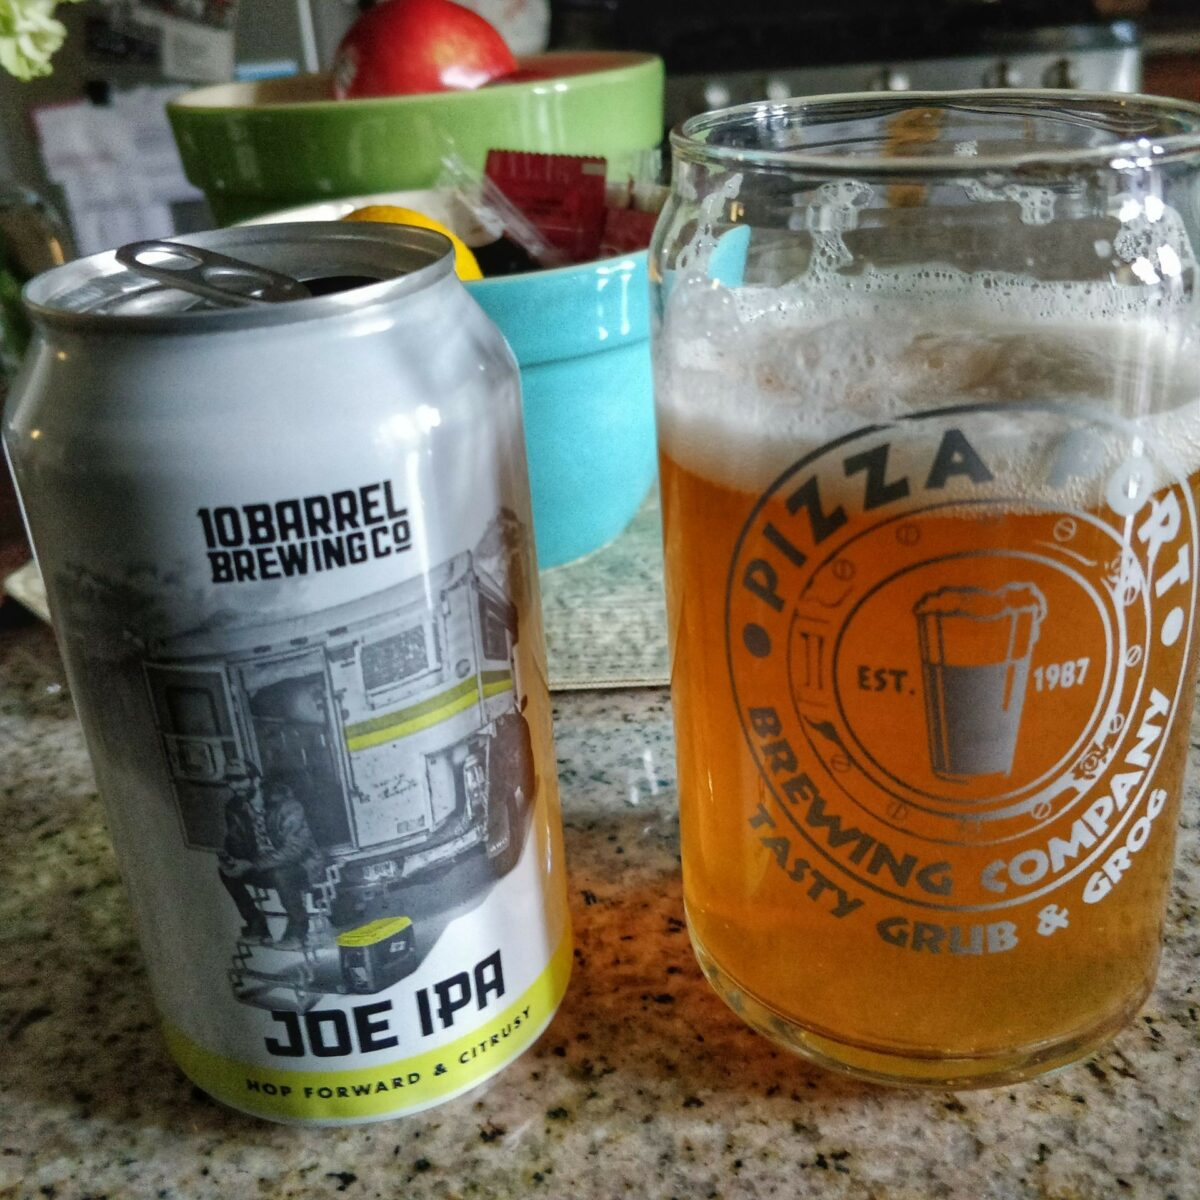 Joe IPA by 10 Barrel Brewing Company